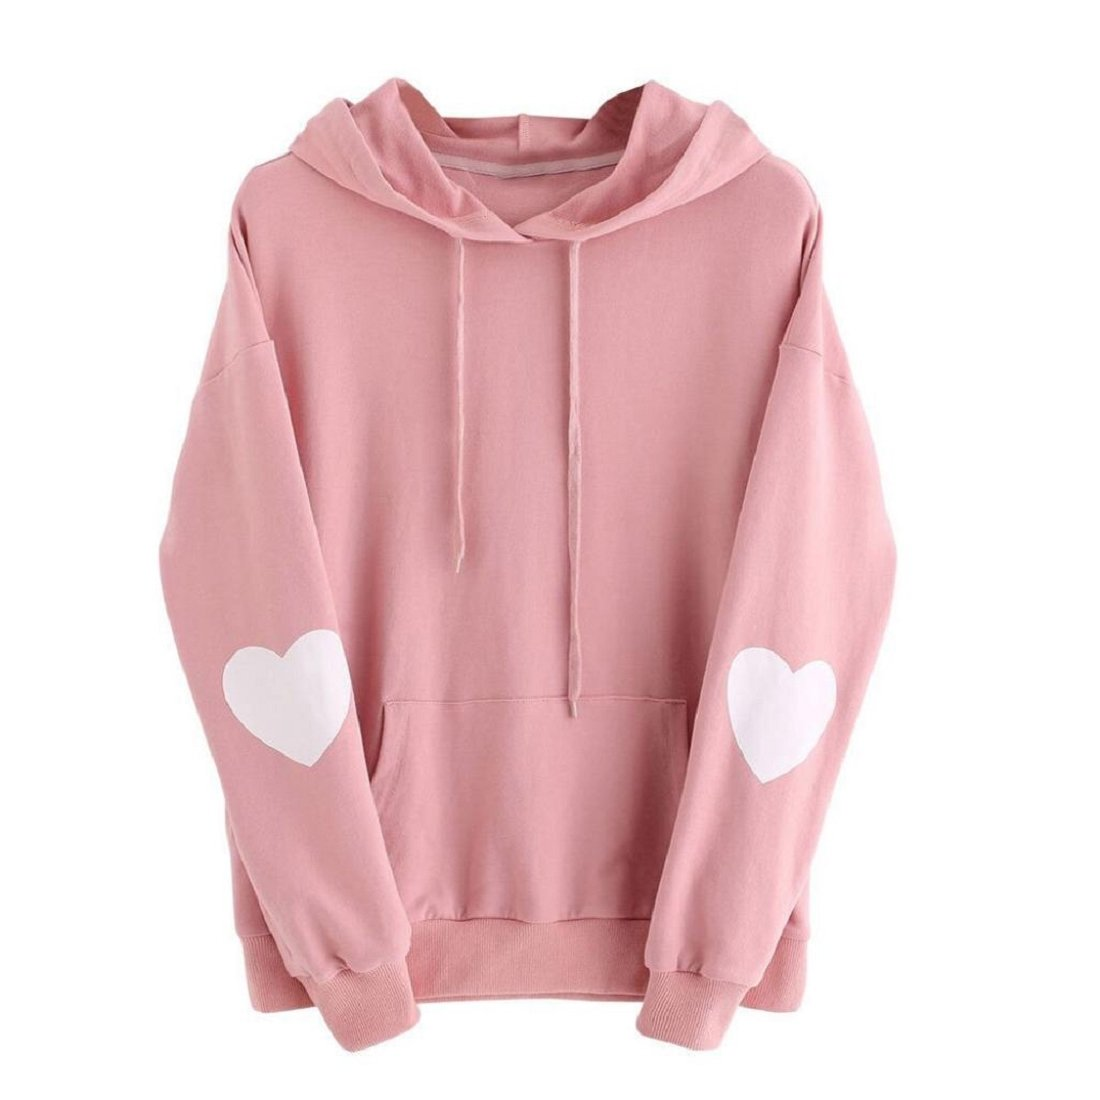 GONKOMA Autumn Womens Girls Long Sleeve Hoodie Sweatshirt Pullover Tops XWJ520